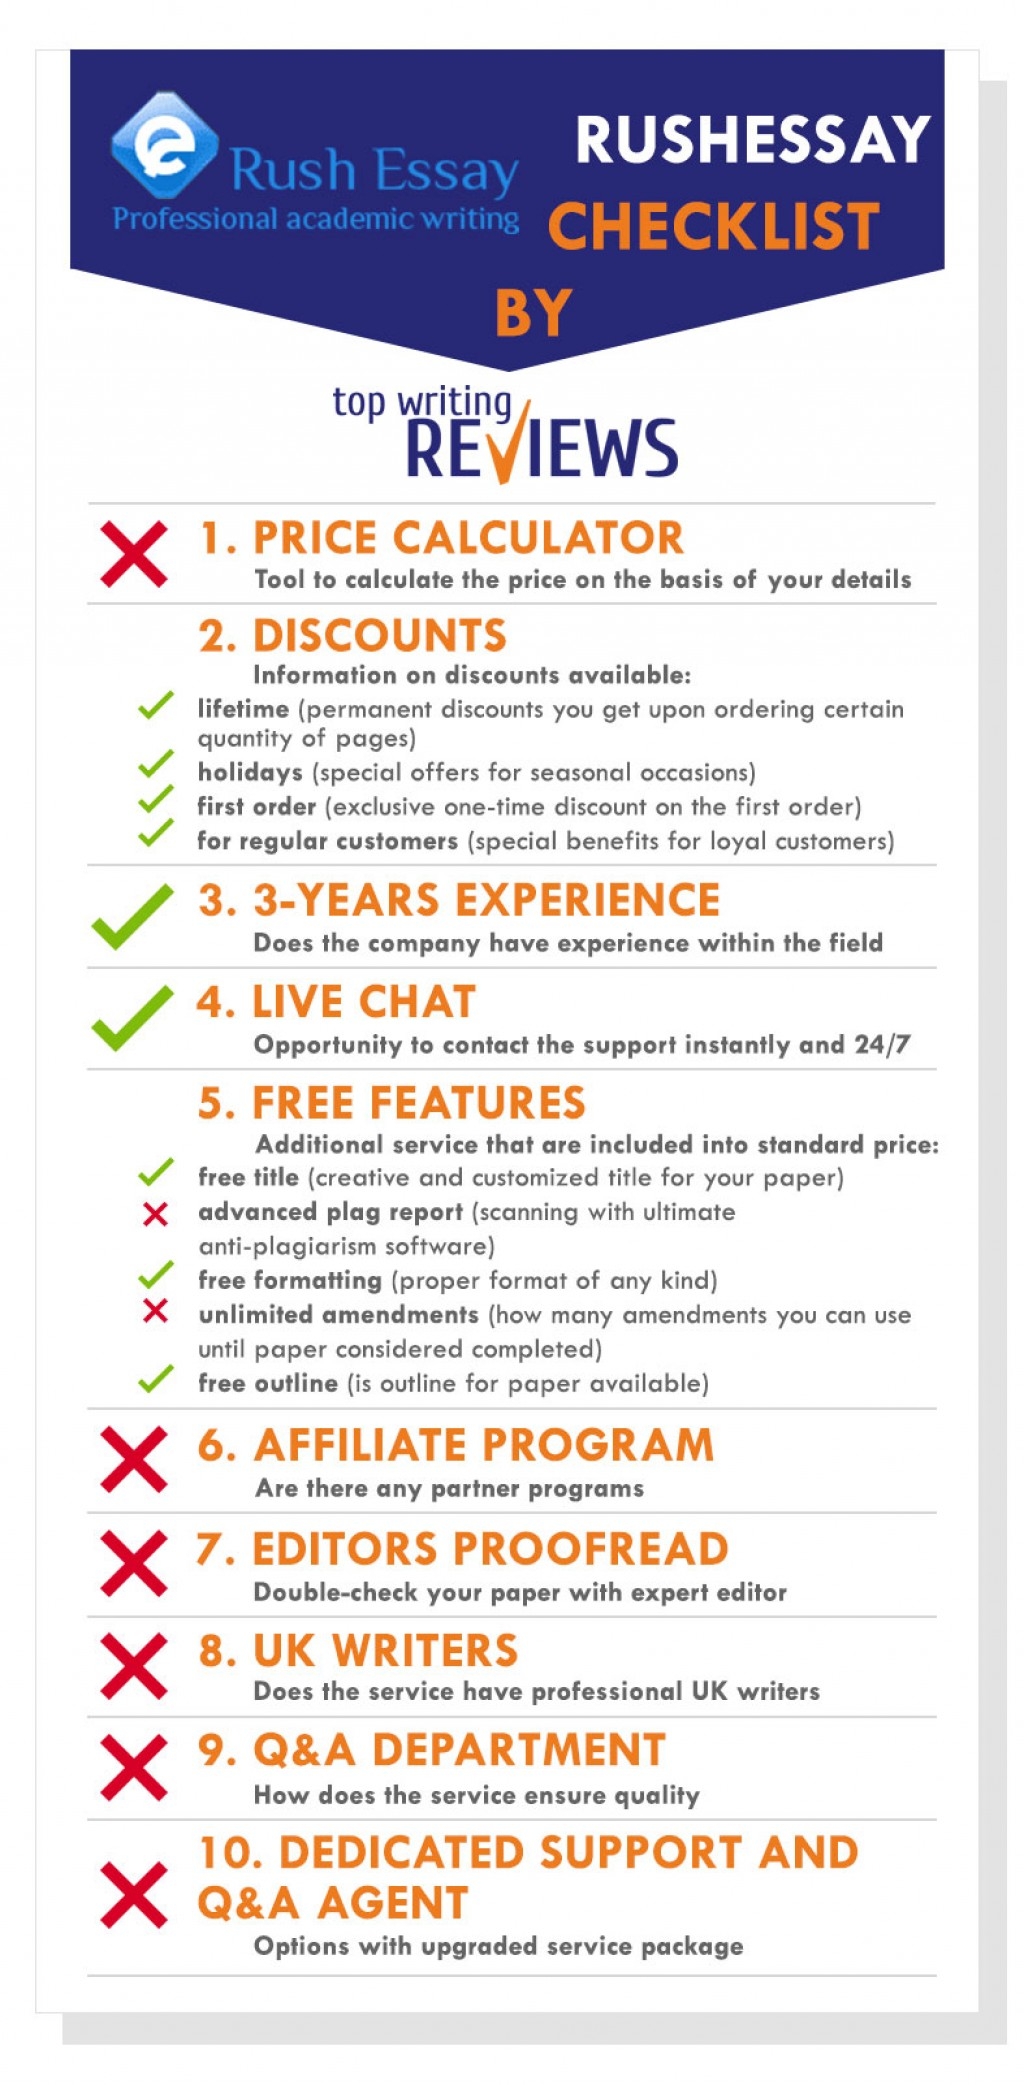 004 Top Essay Writing Reviews Checklist Review Of Rushessay By Topwritingreviews Unique Large